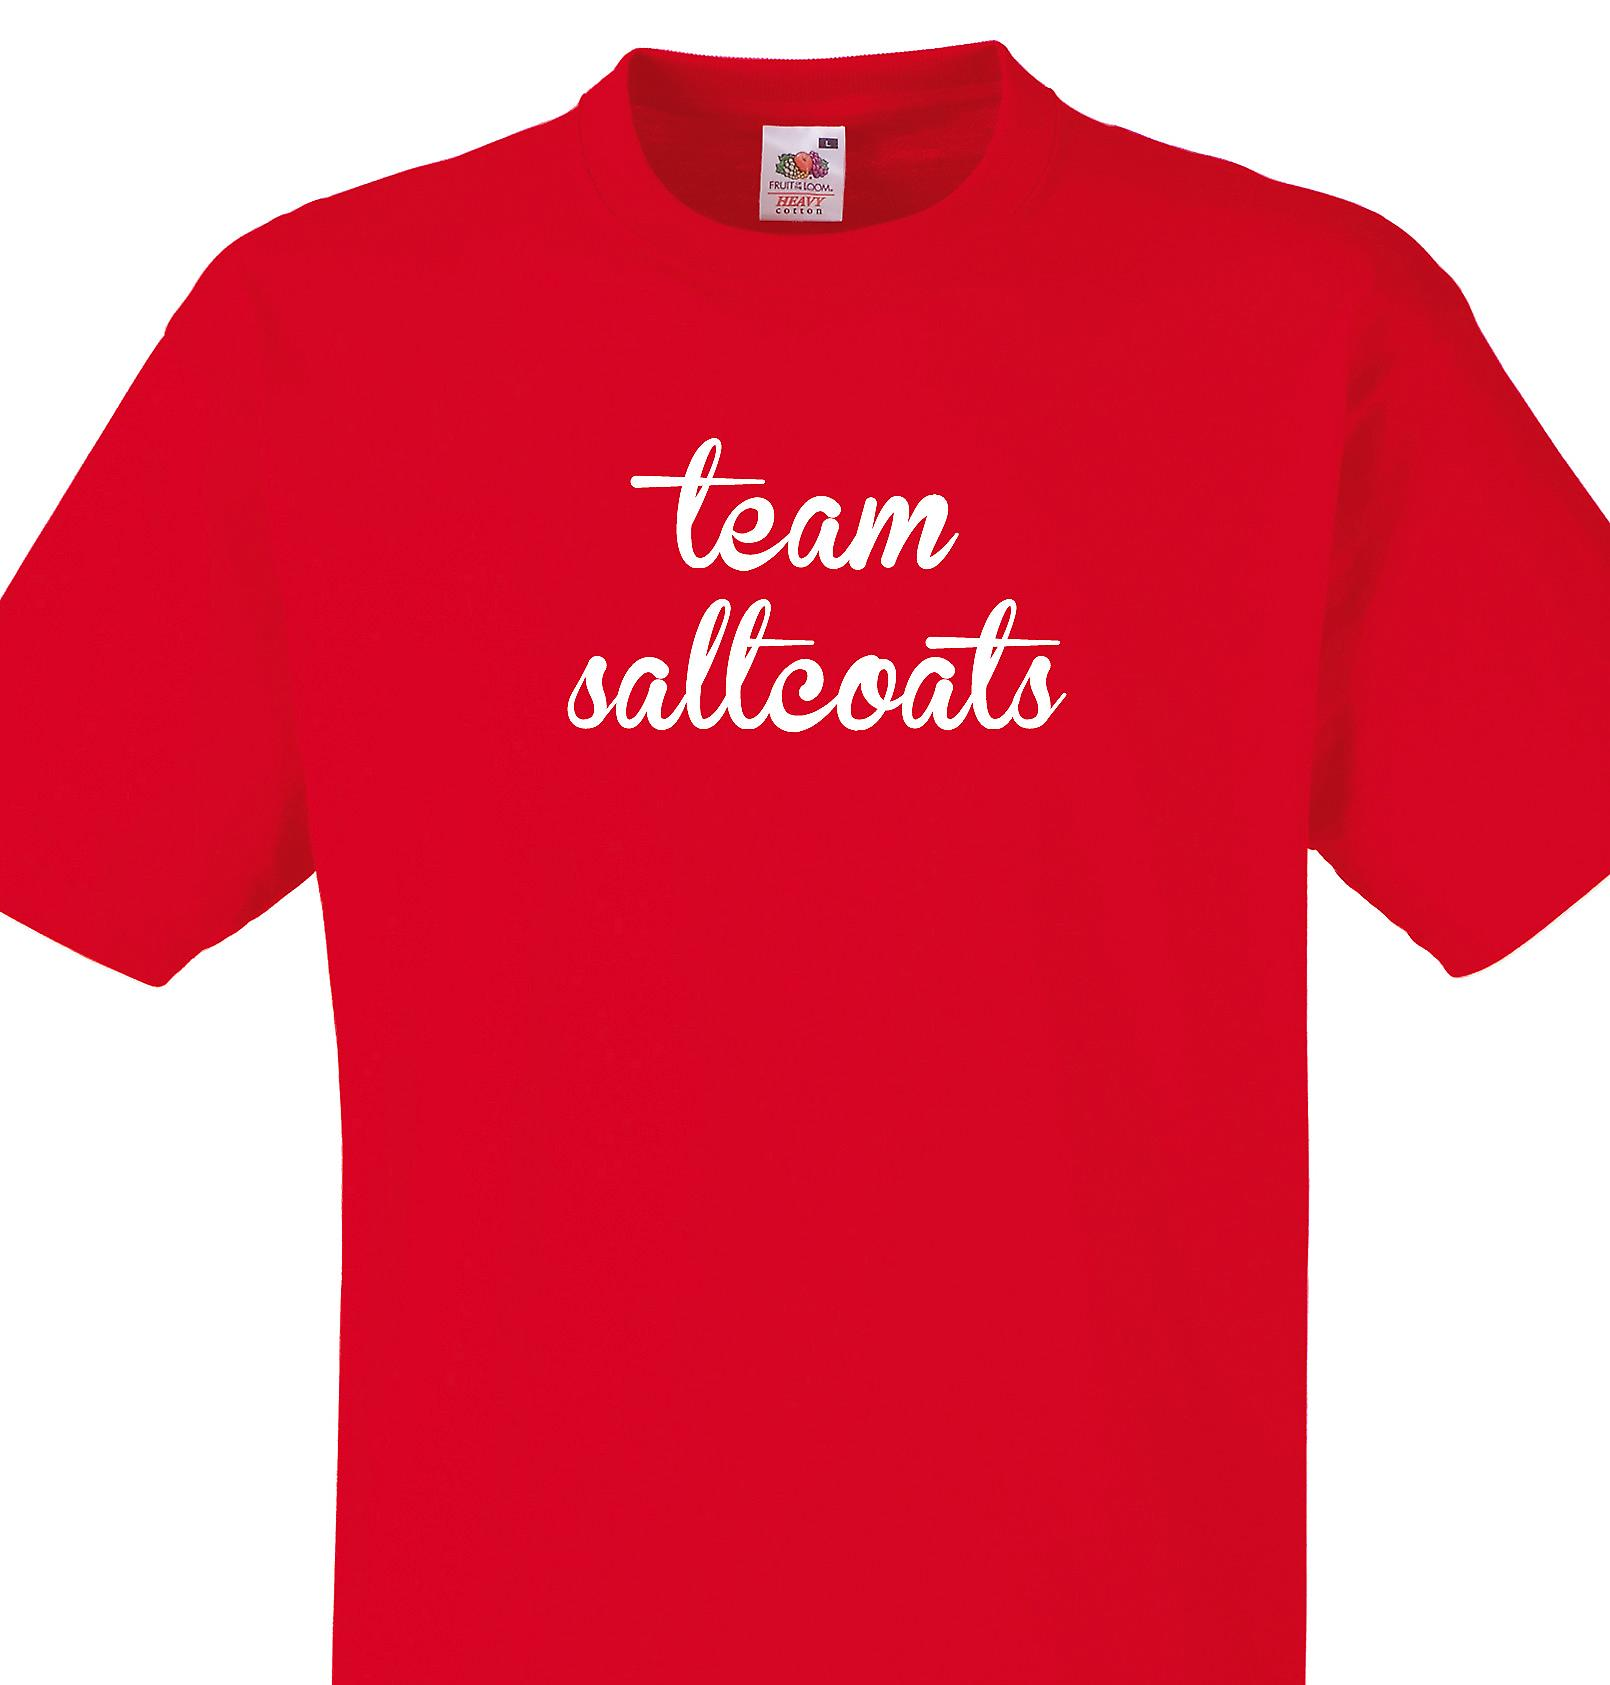 Team Saltcoats Red T shirt